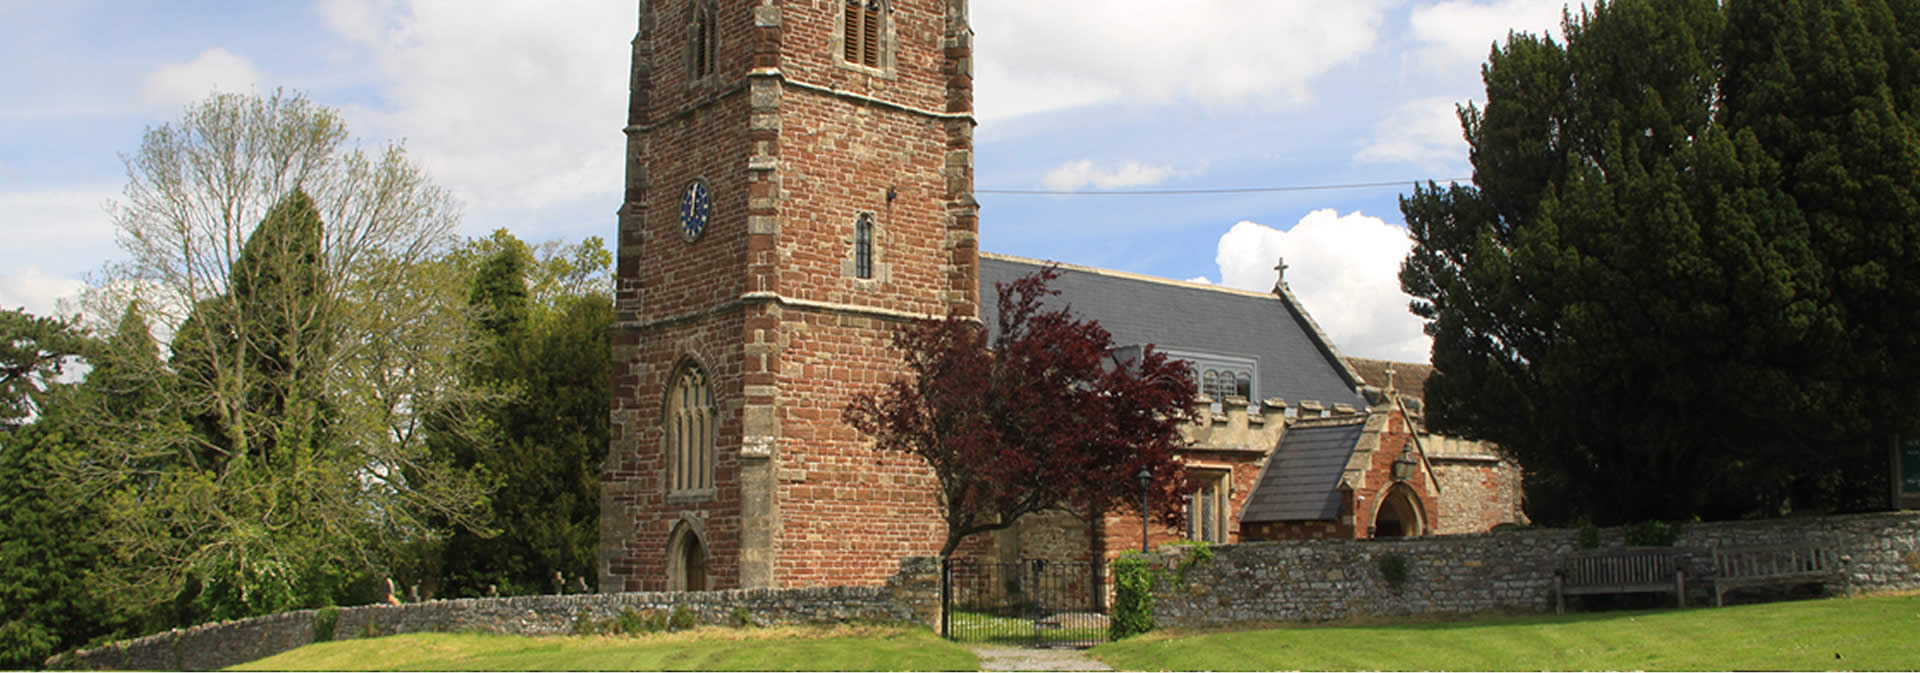 abbots-leigh-church.jpg